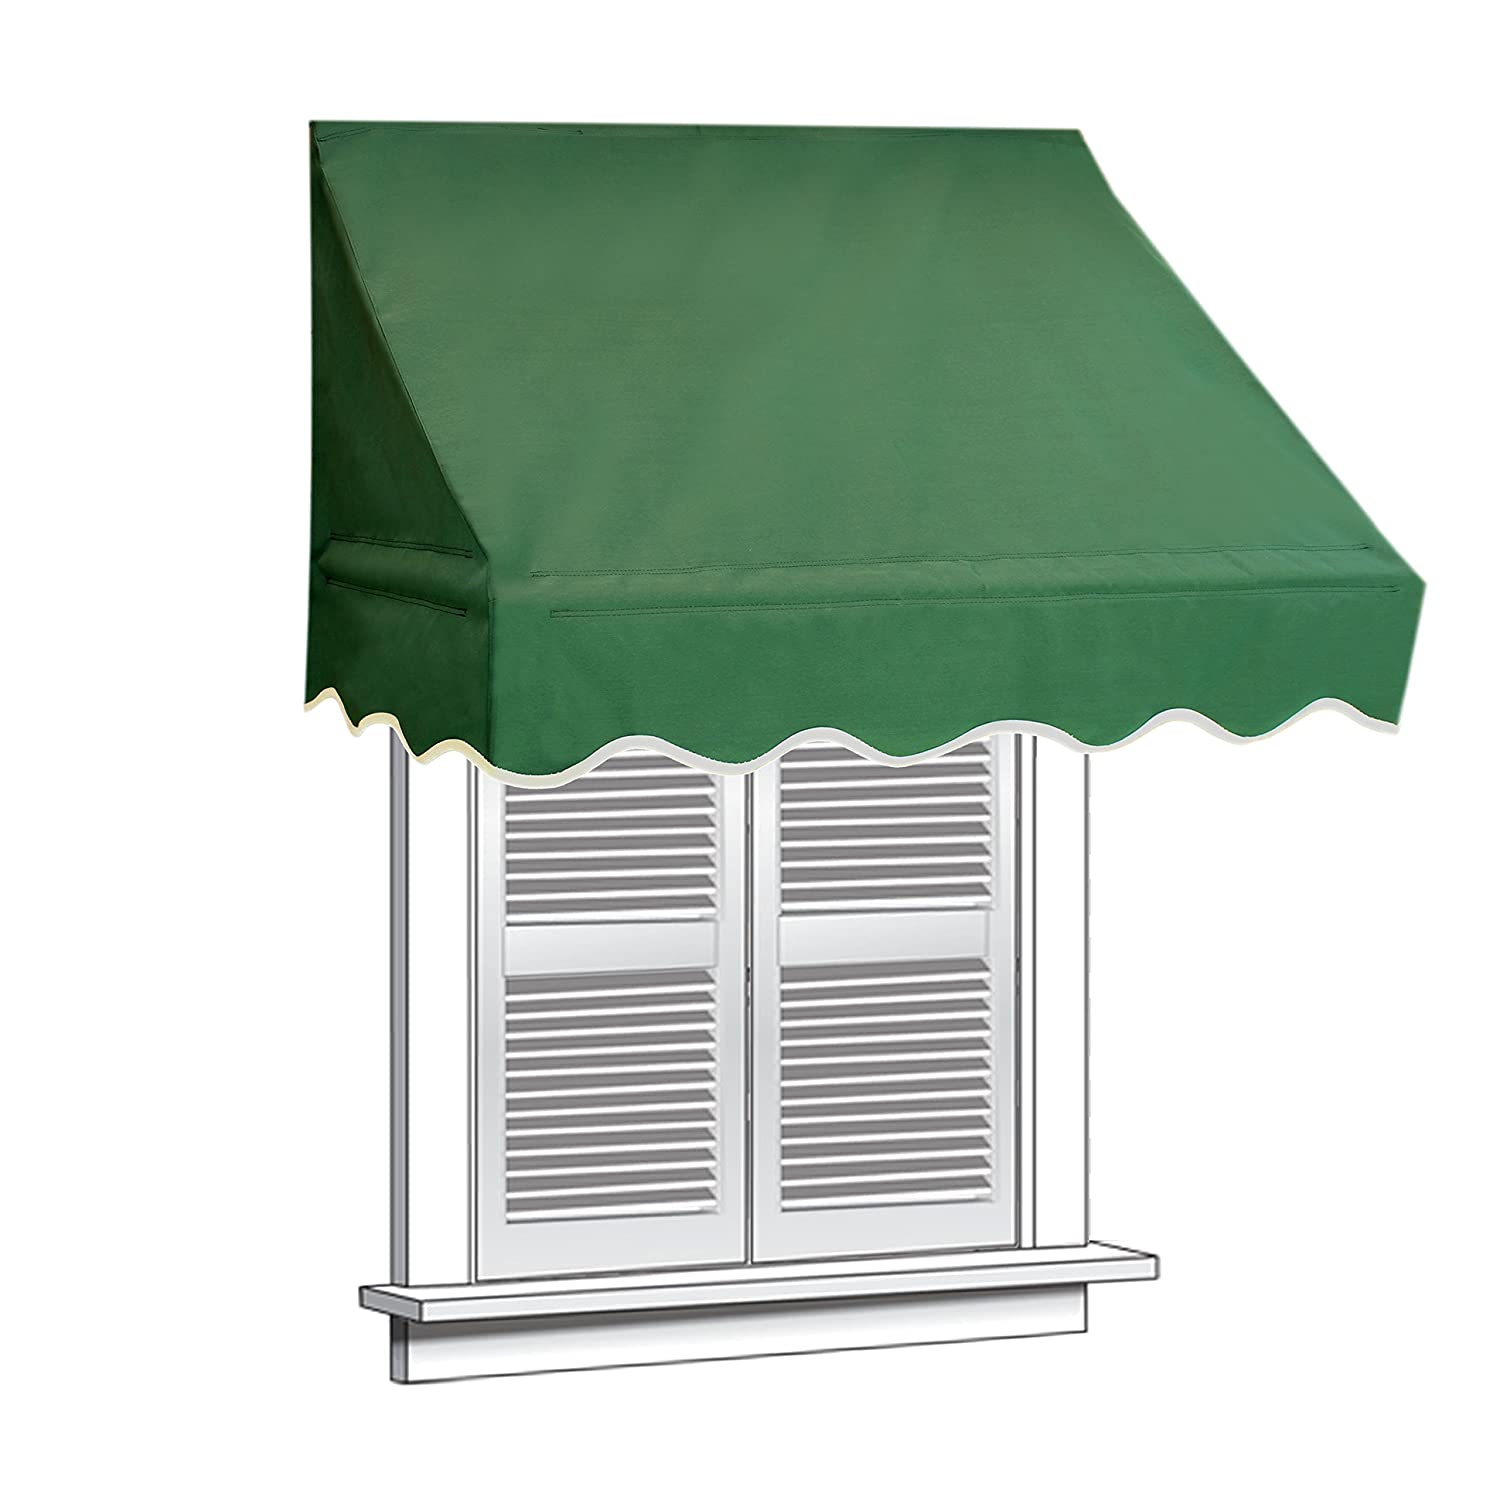 Amazon.com: ALEKO 8x2 Green Window Awning Door Canopy 8 Foot Decorator  Awning: Home Improvement